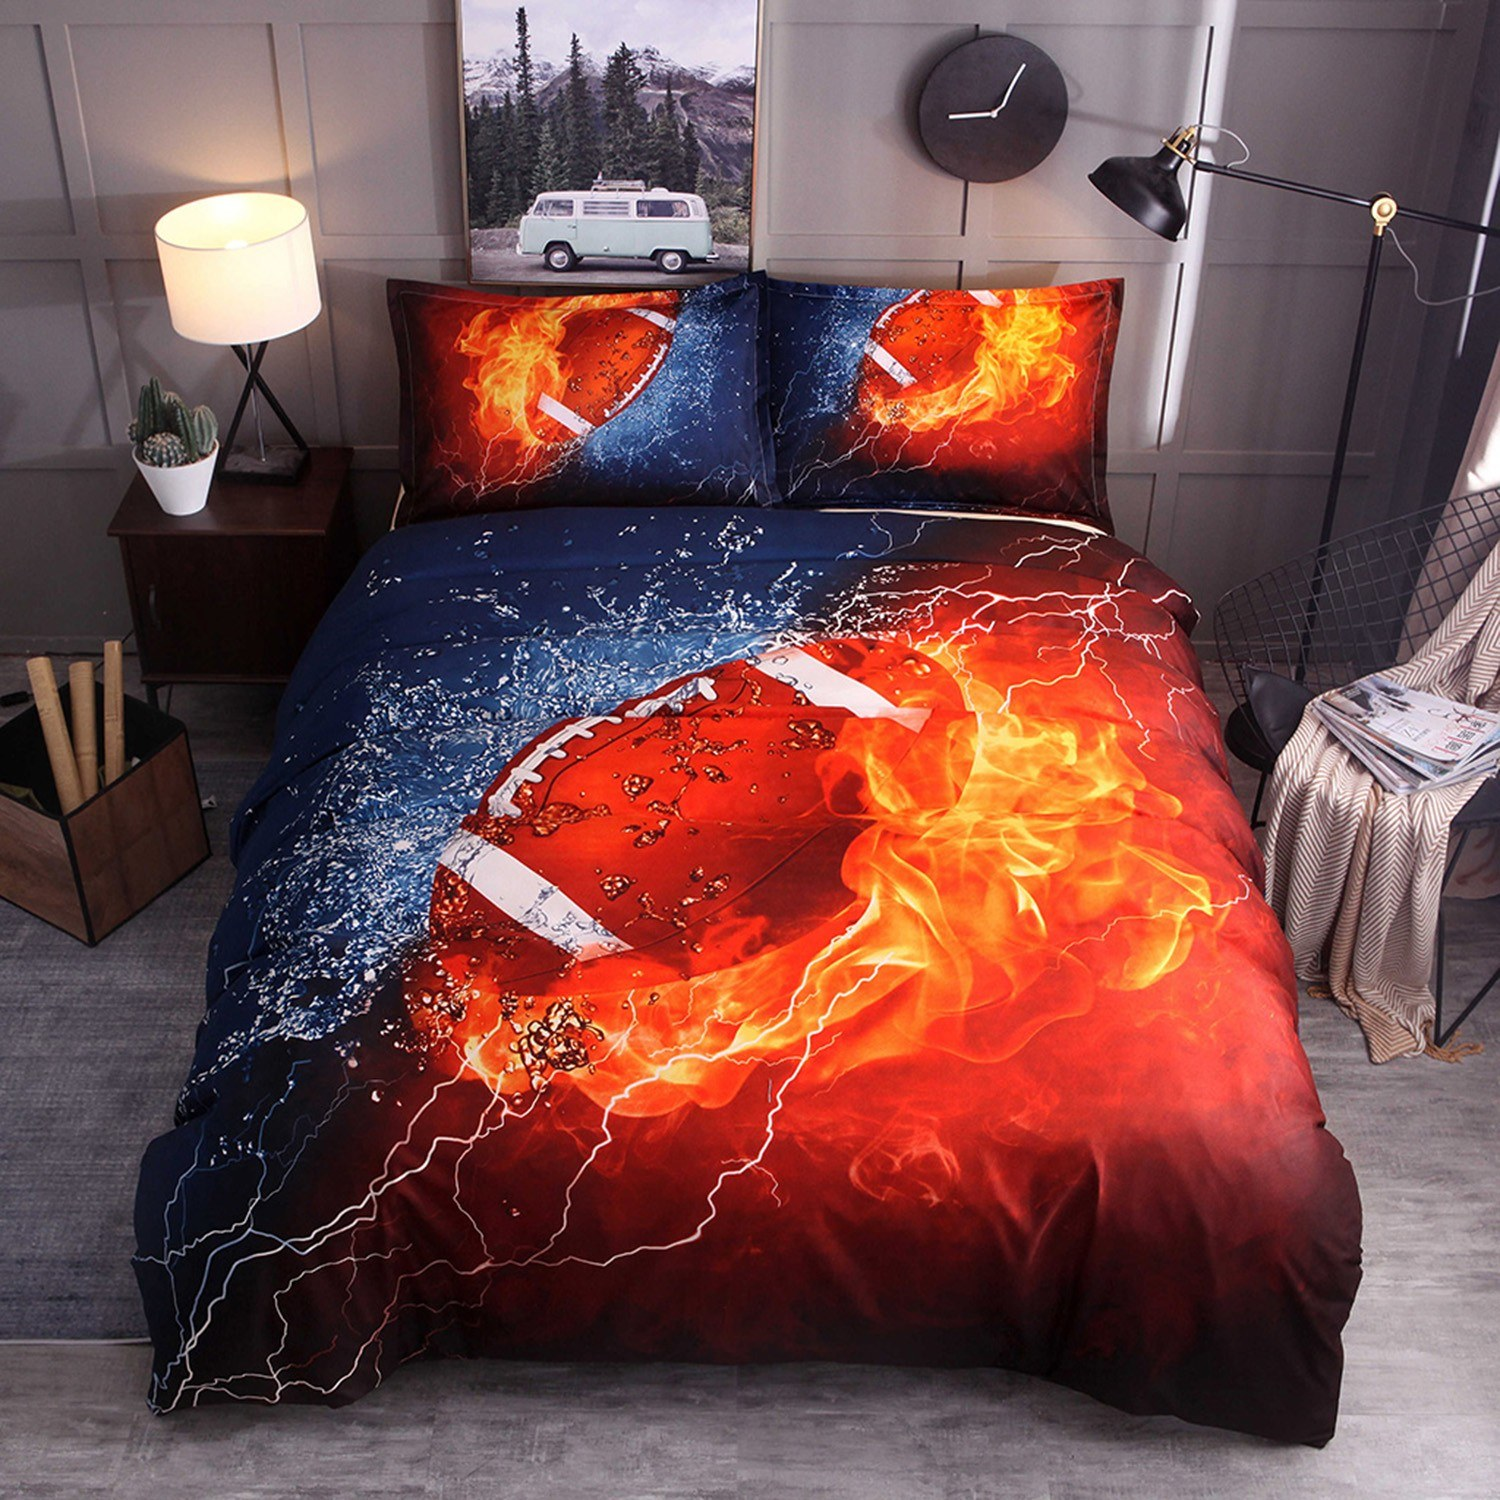 Bedding Set Football Pillowcase Bed Sheet Bed Cover Soft And Comfortable 2/3 pieces